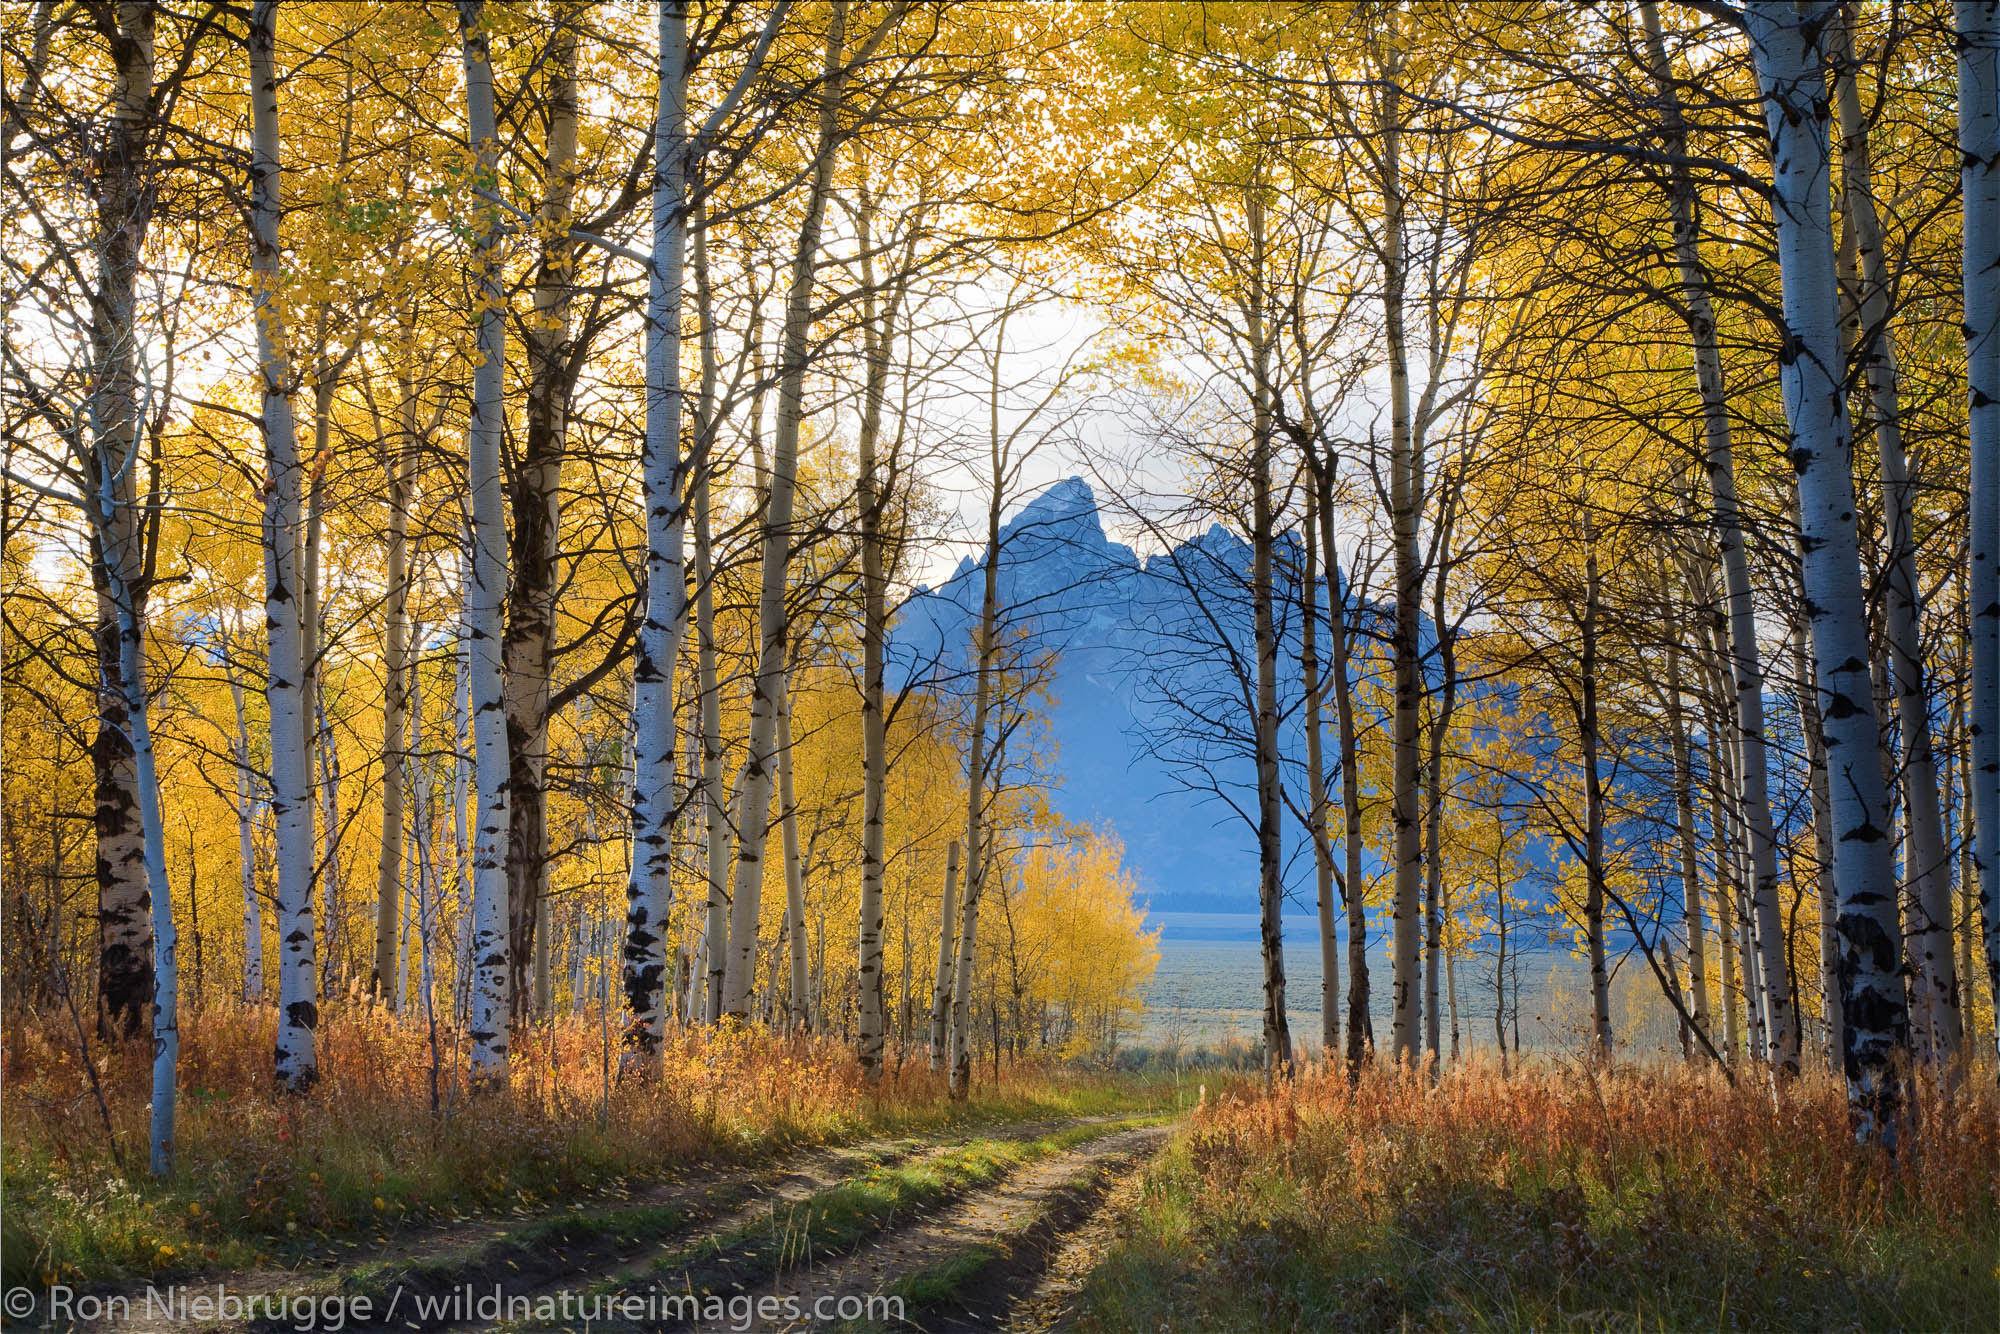 Fall colors in Bridger-Teton National Forest looking at the Tetons in the Grand Teton National Park, Wyoming.